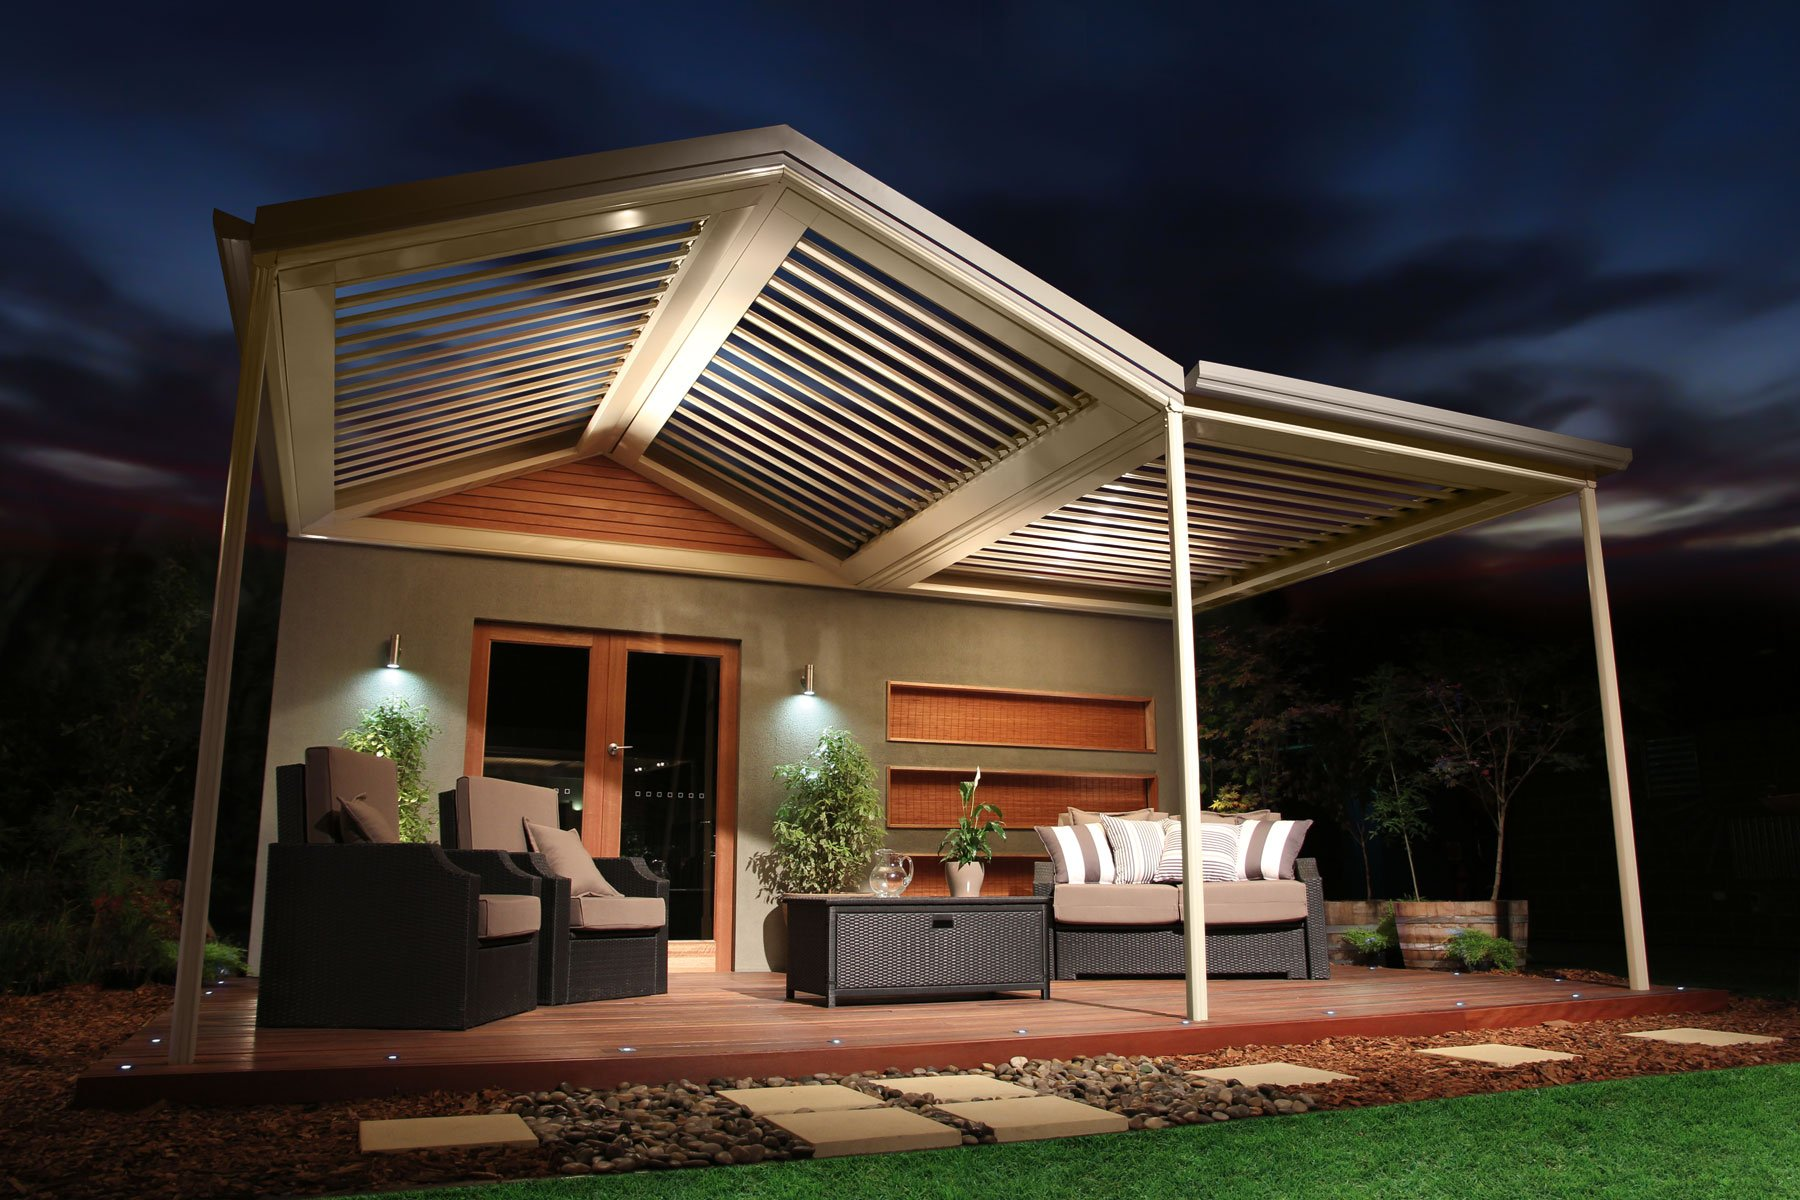 See Night Viewing at Elegance of Opening Sunroof by Patio Builders in Murwillumbah